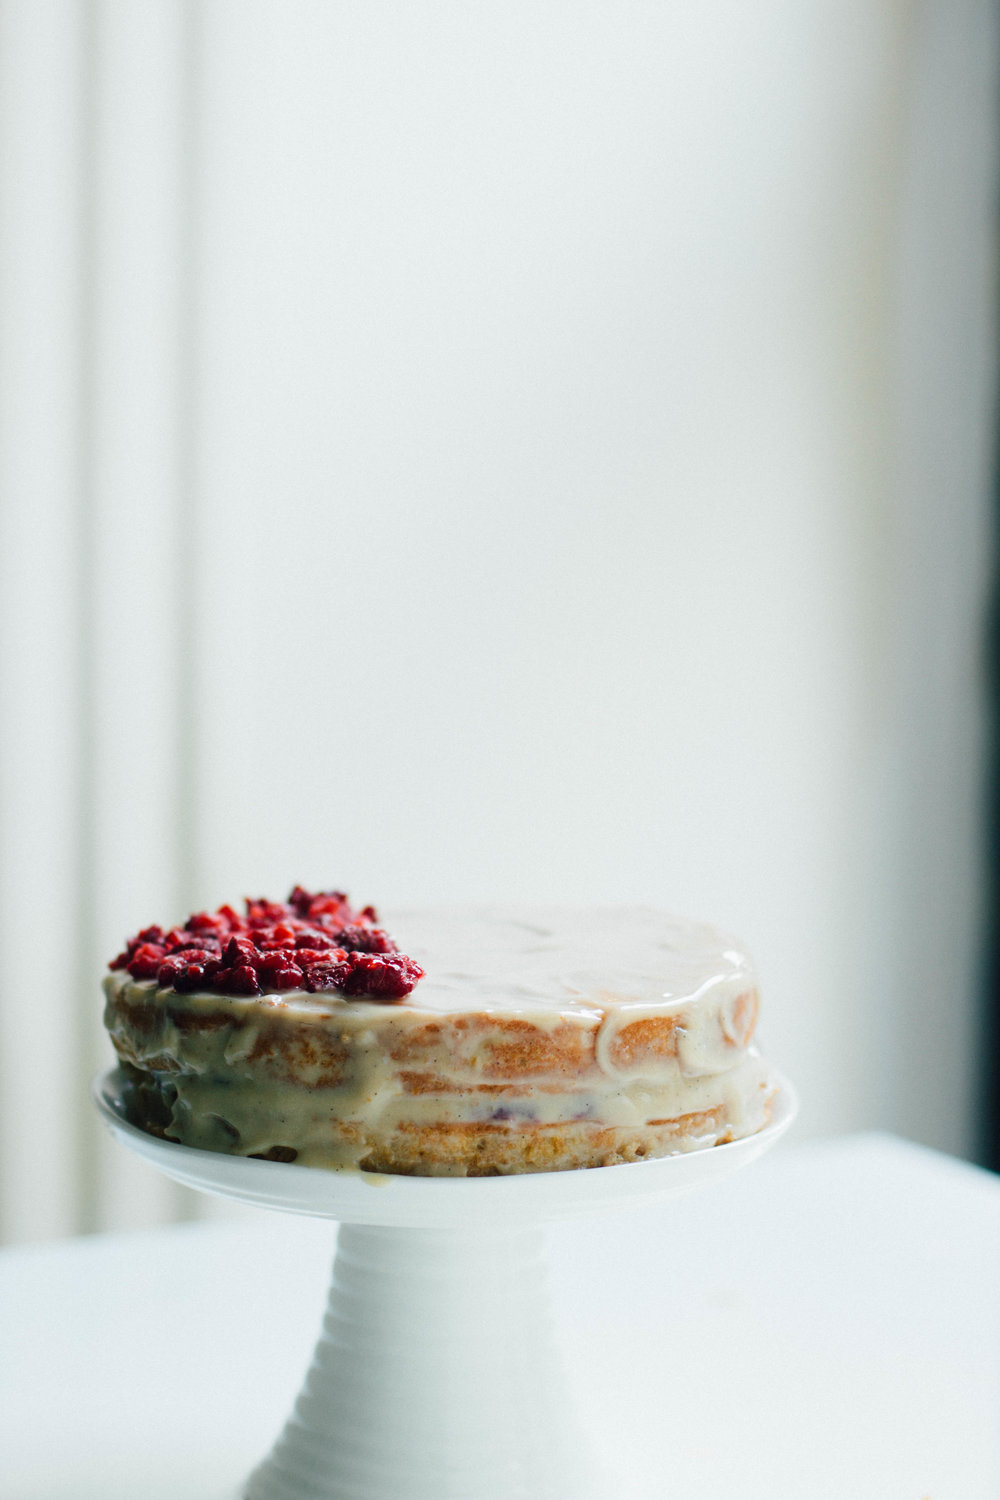 nutmeg and pear | gluten + grain free almond d meal layer cake w/vanilla bean, refined sugar free raspberry preserves + whipped ricotta frosting